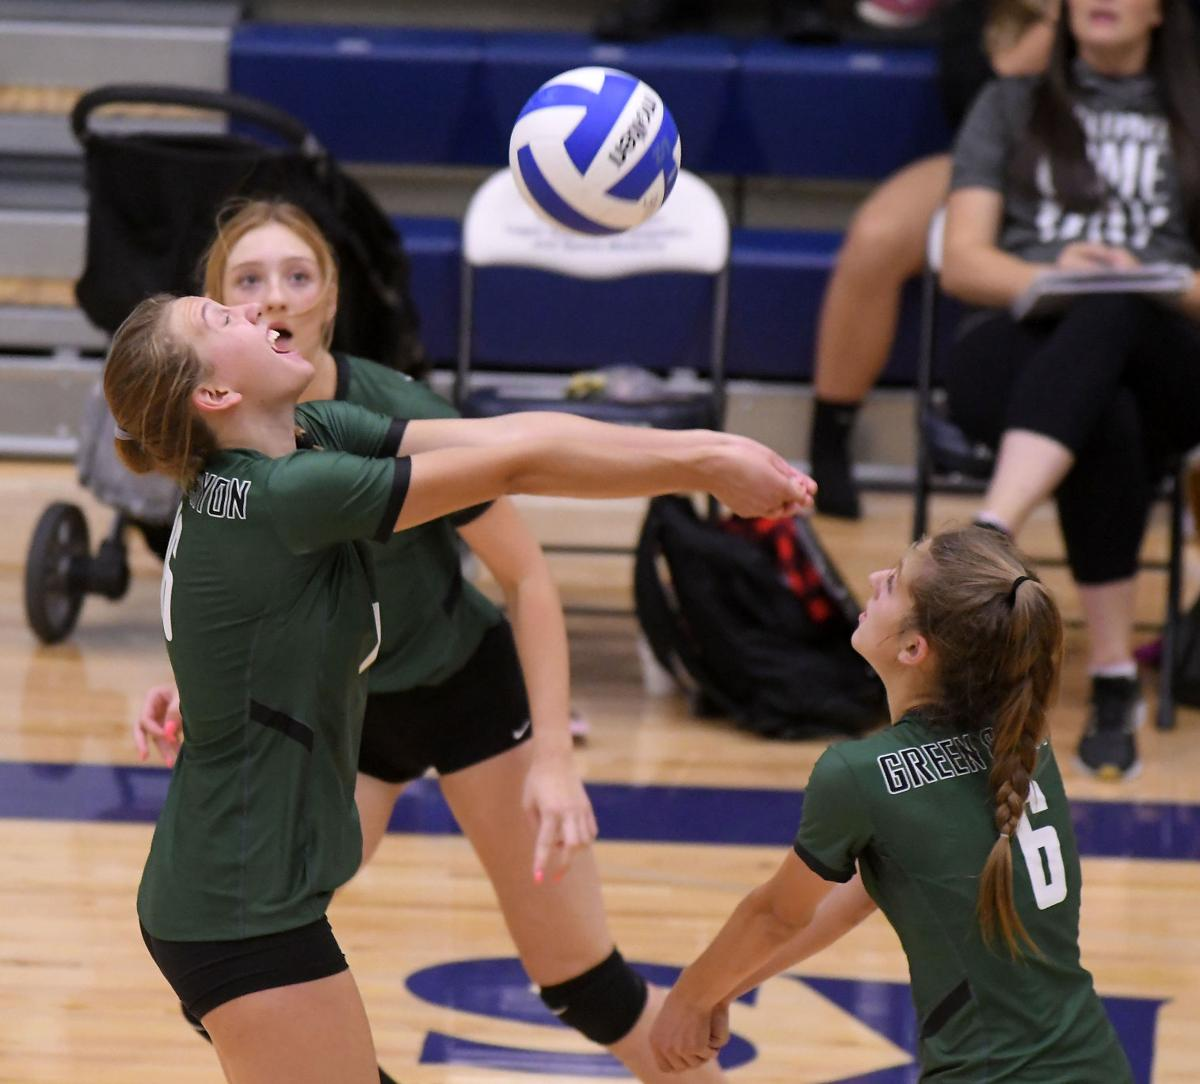 Ridgeline Green Canyon Volleyball